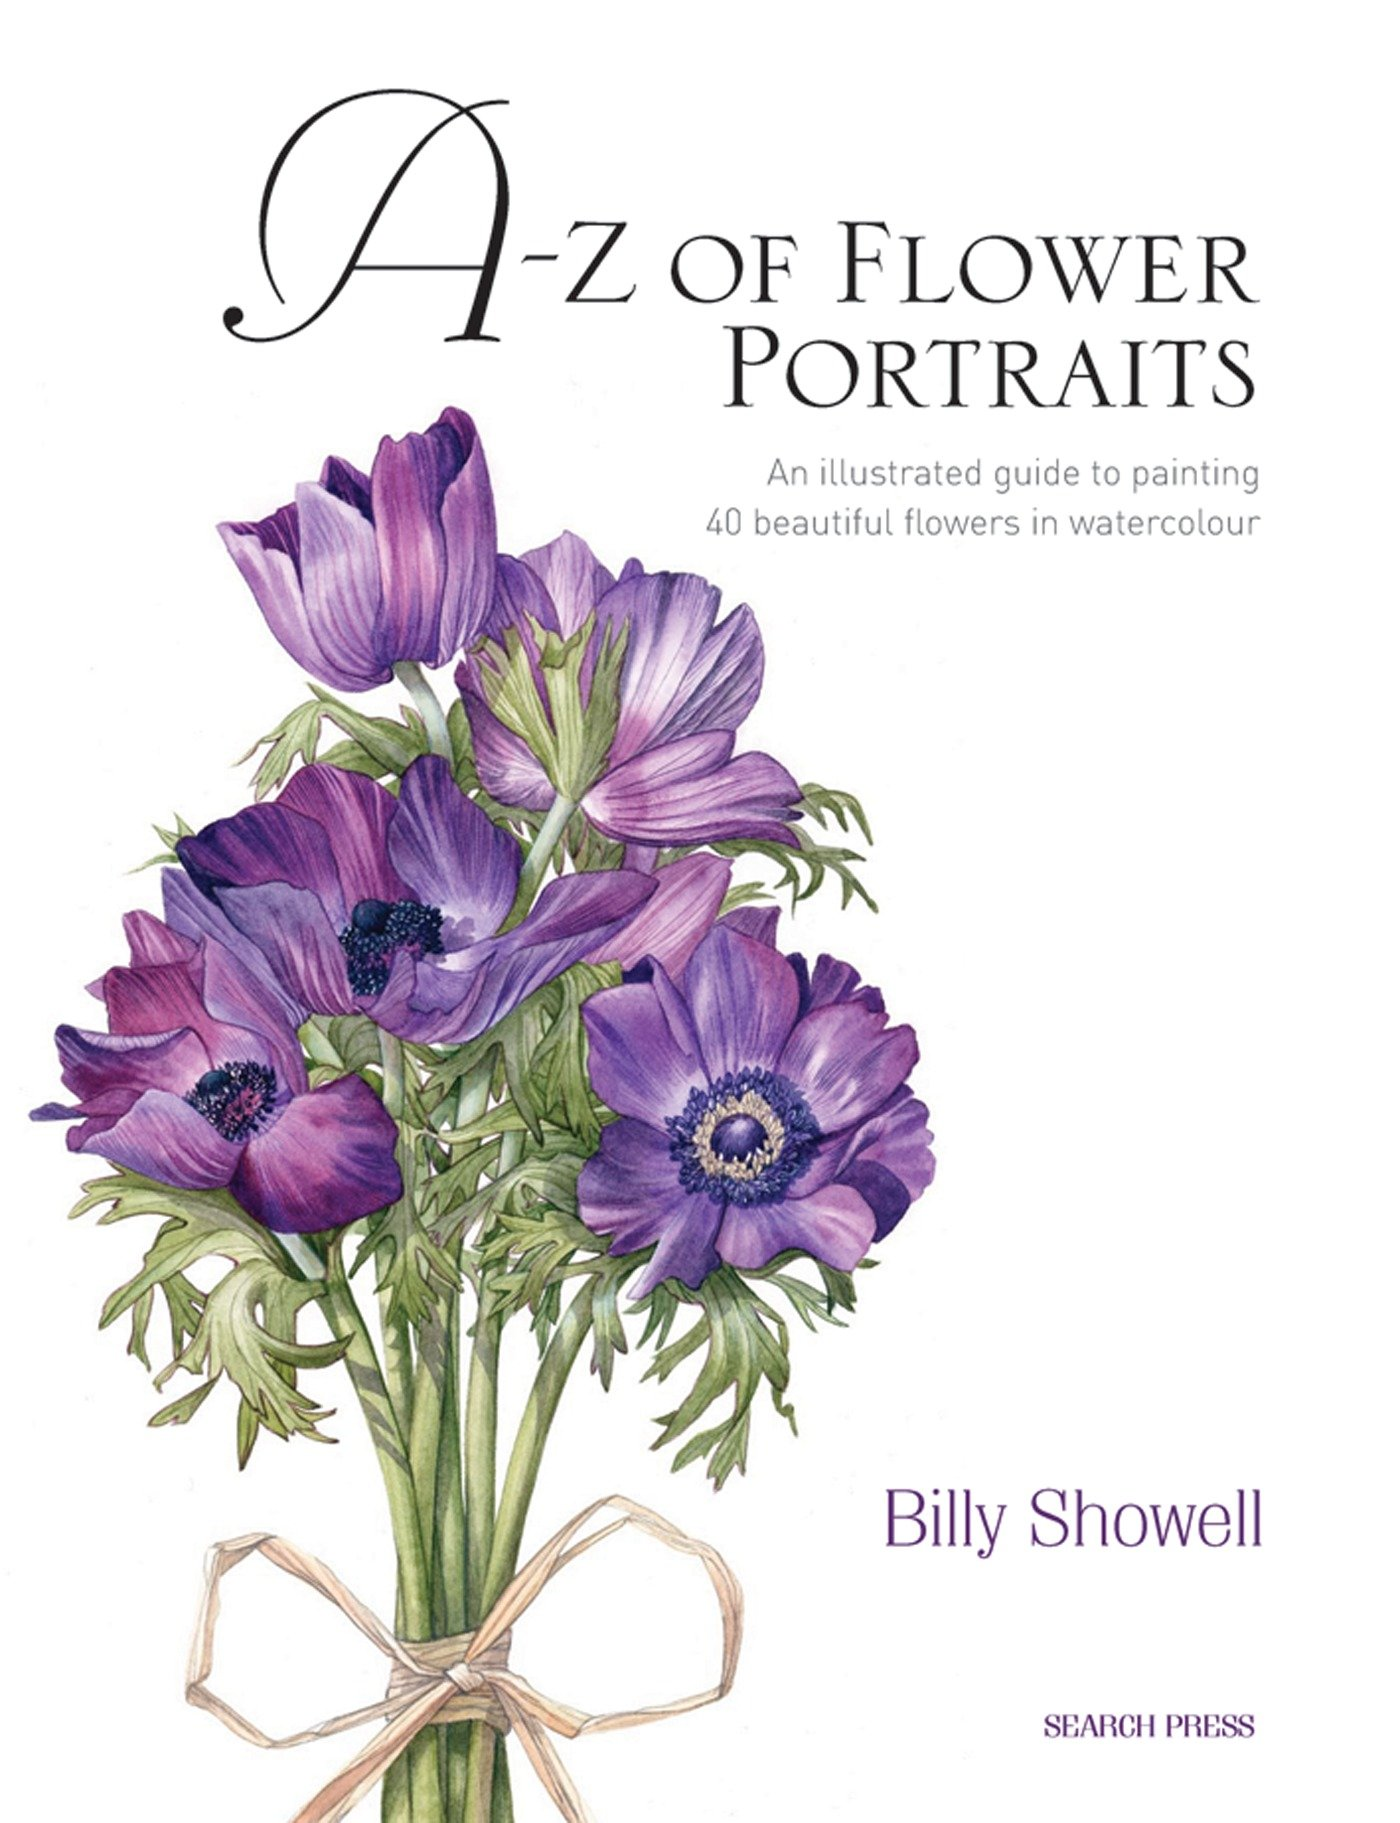 A z of flower portraits an illustrated guide to painting 40 a z of flower portraits an illustrated guide to painting 40 beautiful flowers in watercolour billy showell 0884684835291 amazon books izmirmasajfo Image collections